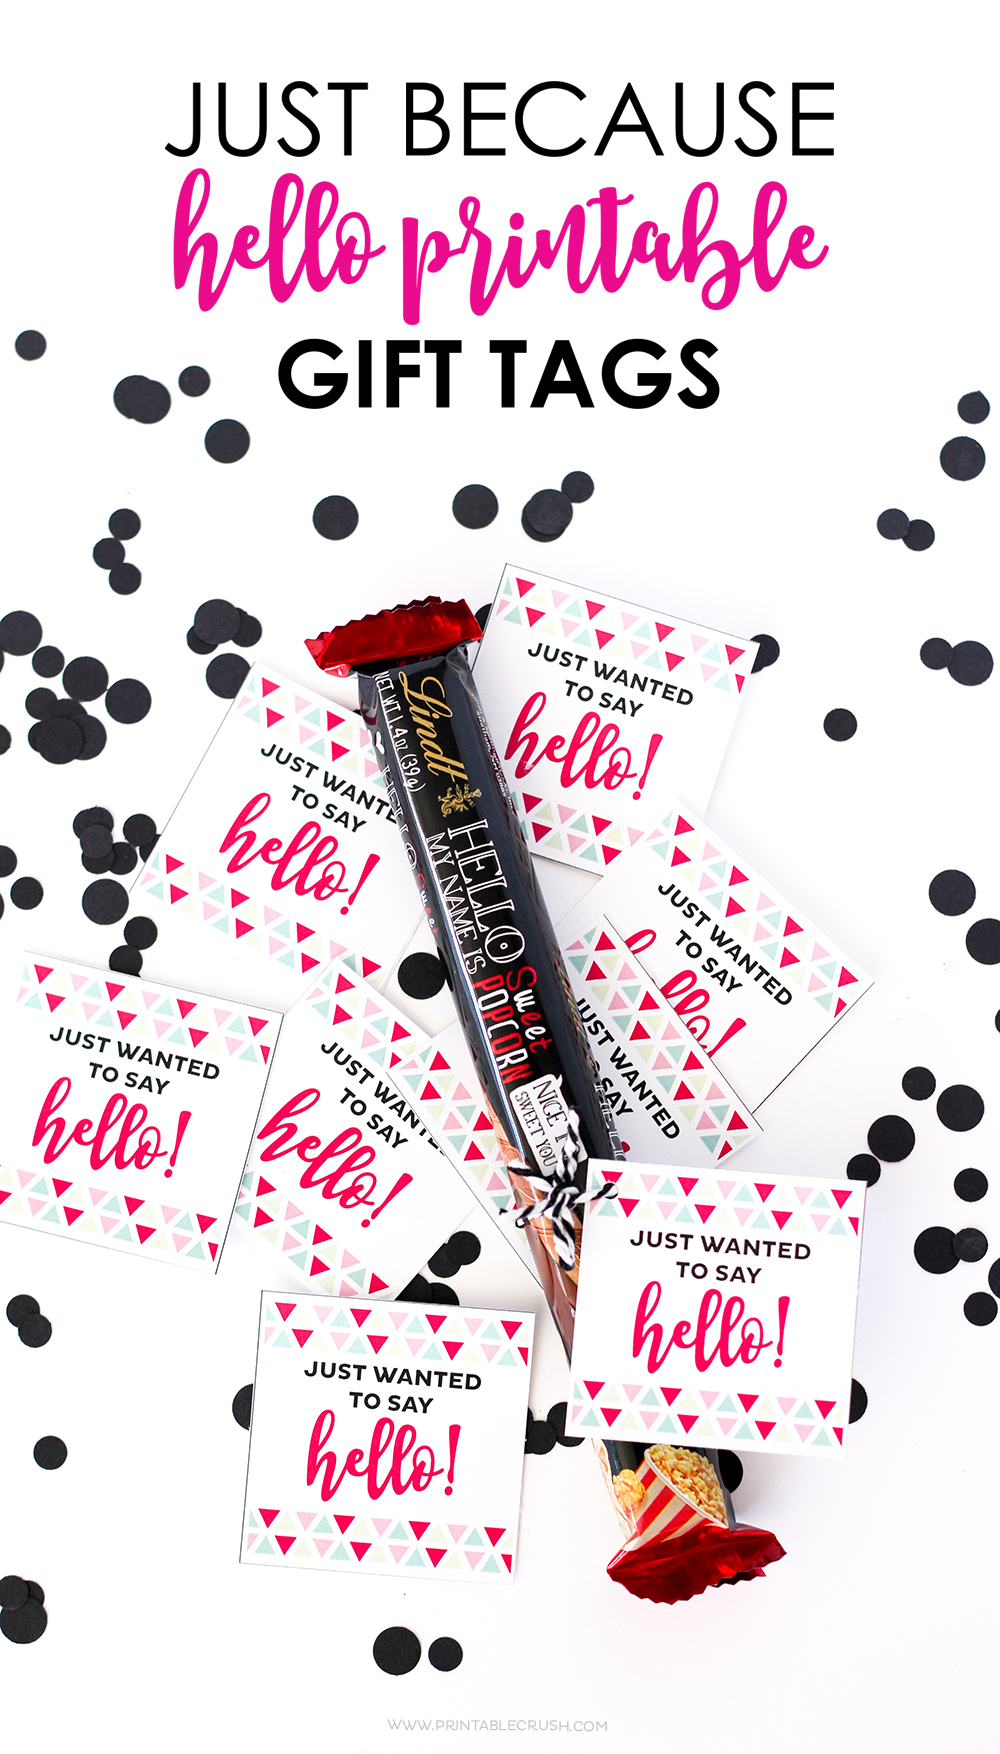 It's always a good time to make someone's day with these Hello Printable Gift Tags! Attach them to some candy bars for a simple and delicious gift.